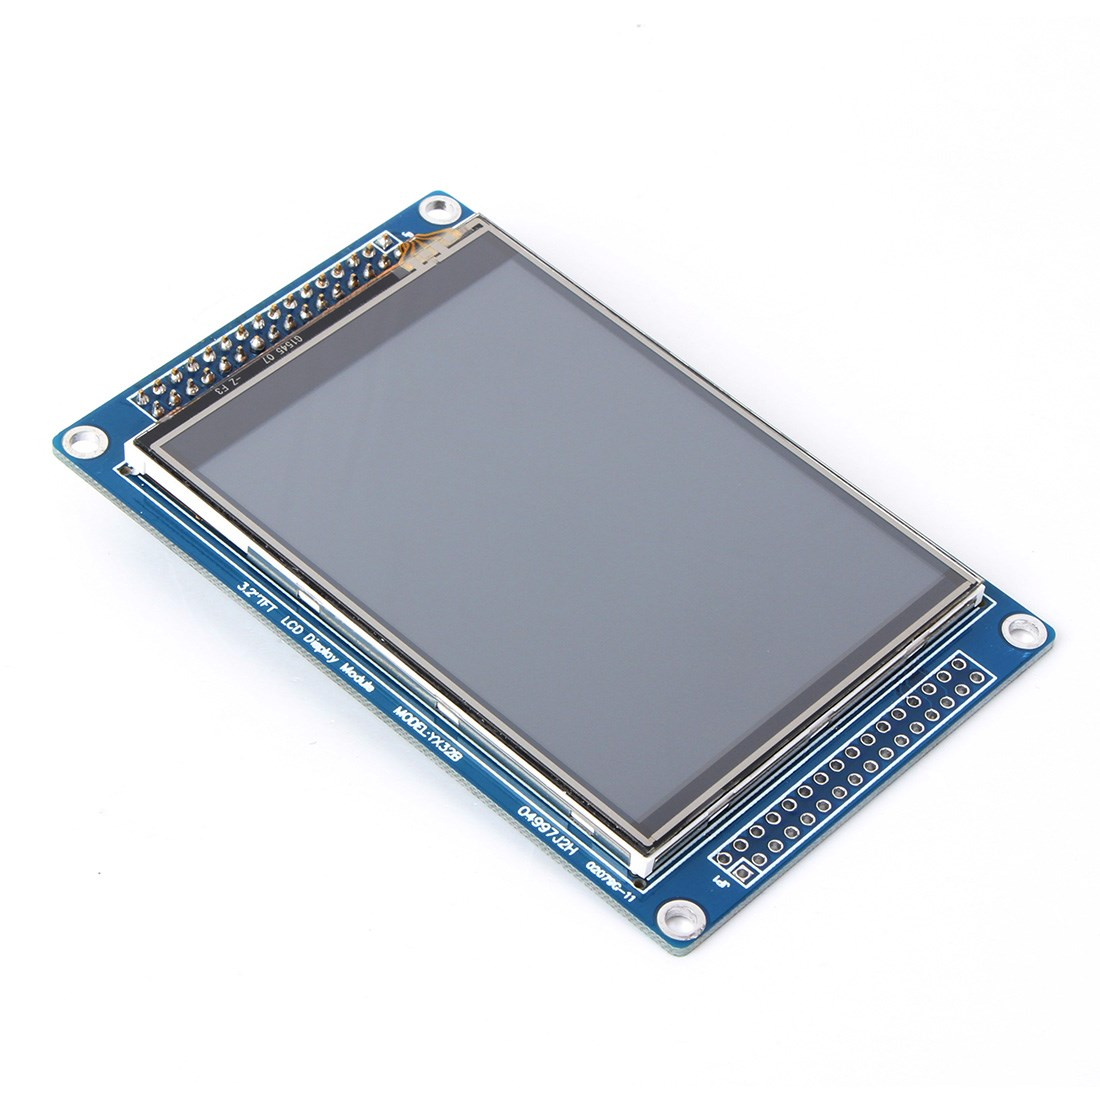 New Electric Unit 3.2 Inch SSD1289 TFT LCD Display Module Touch Panel For Arduino 9.4 x 6.1cm Resolution Ratio 240 x 320(China (Mainland))